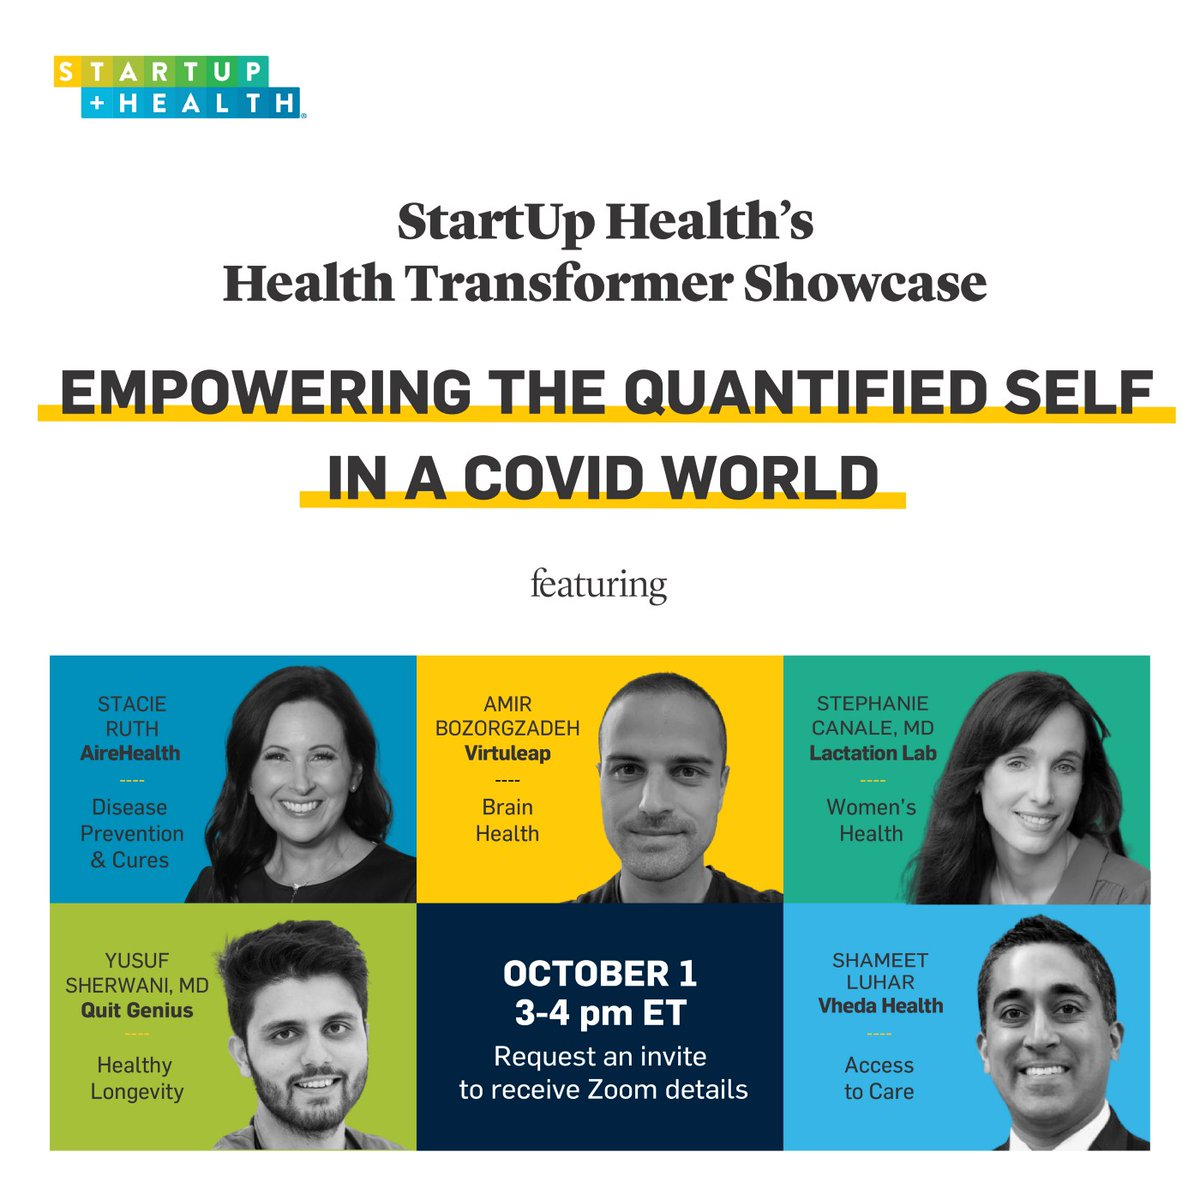 This Thursday, 10/1, request an invite to hear from 5 innovative leaders from our portfolio who have been dedicating their lives to help empower individuals to be more involved in the management of their own health. 💡 https://t.co/kvopdcKjO1 https://t.co/KKIJ9Zofxz